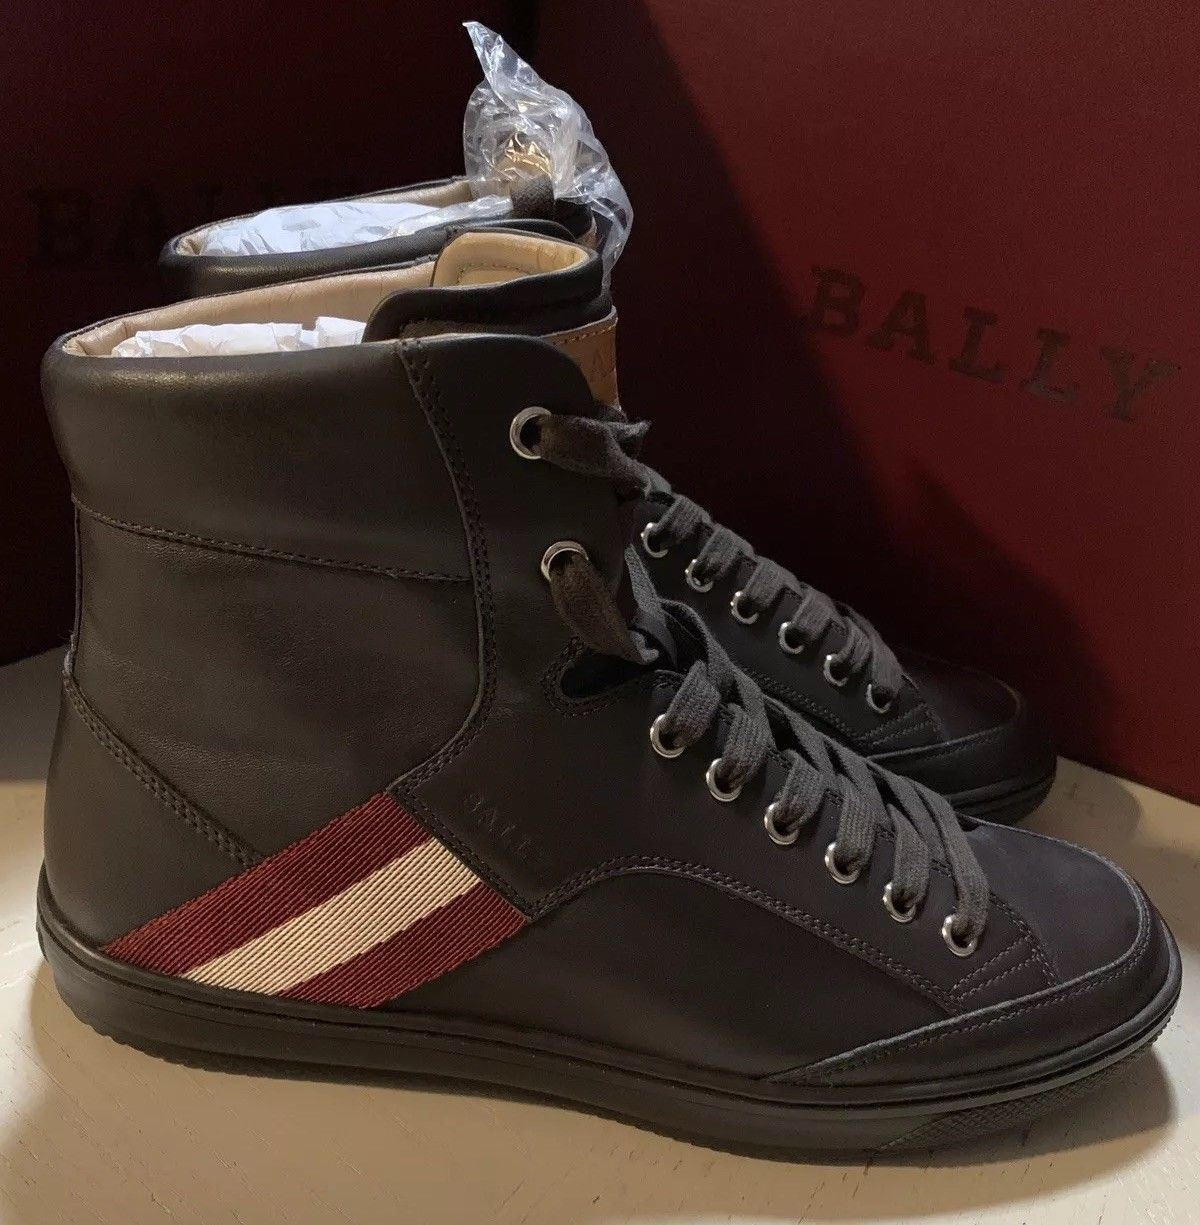 New $650 Bally Men Oldani Leather High-Top Sneakers Brown ( Chocolate ) 6.5 US